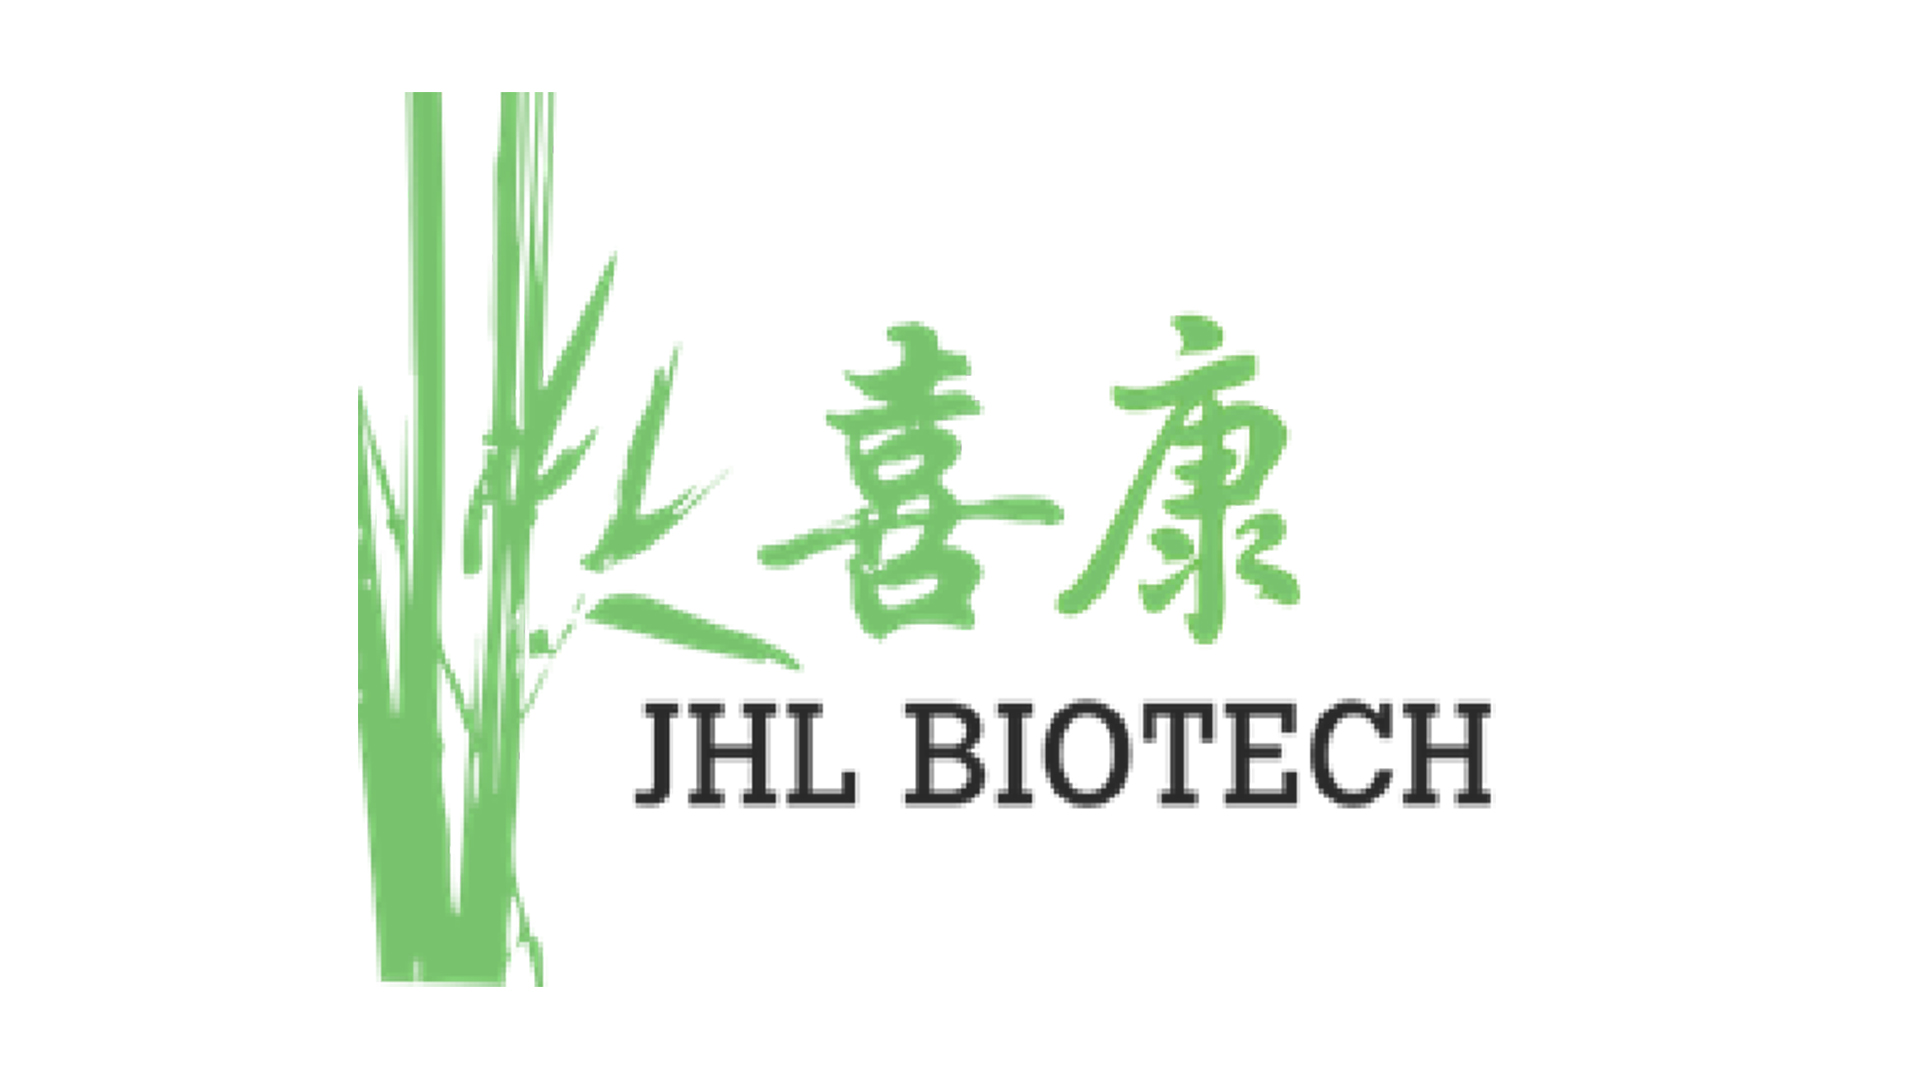 JHL Biotech IPO Video